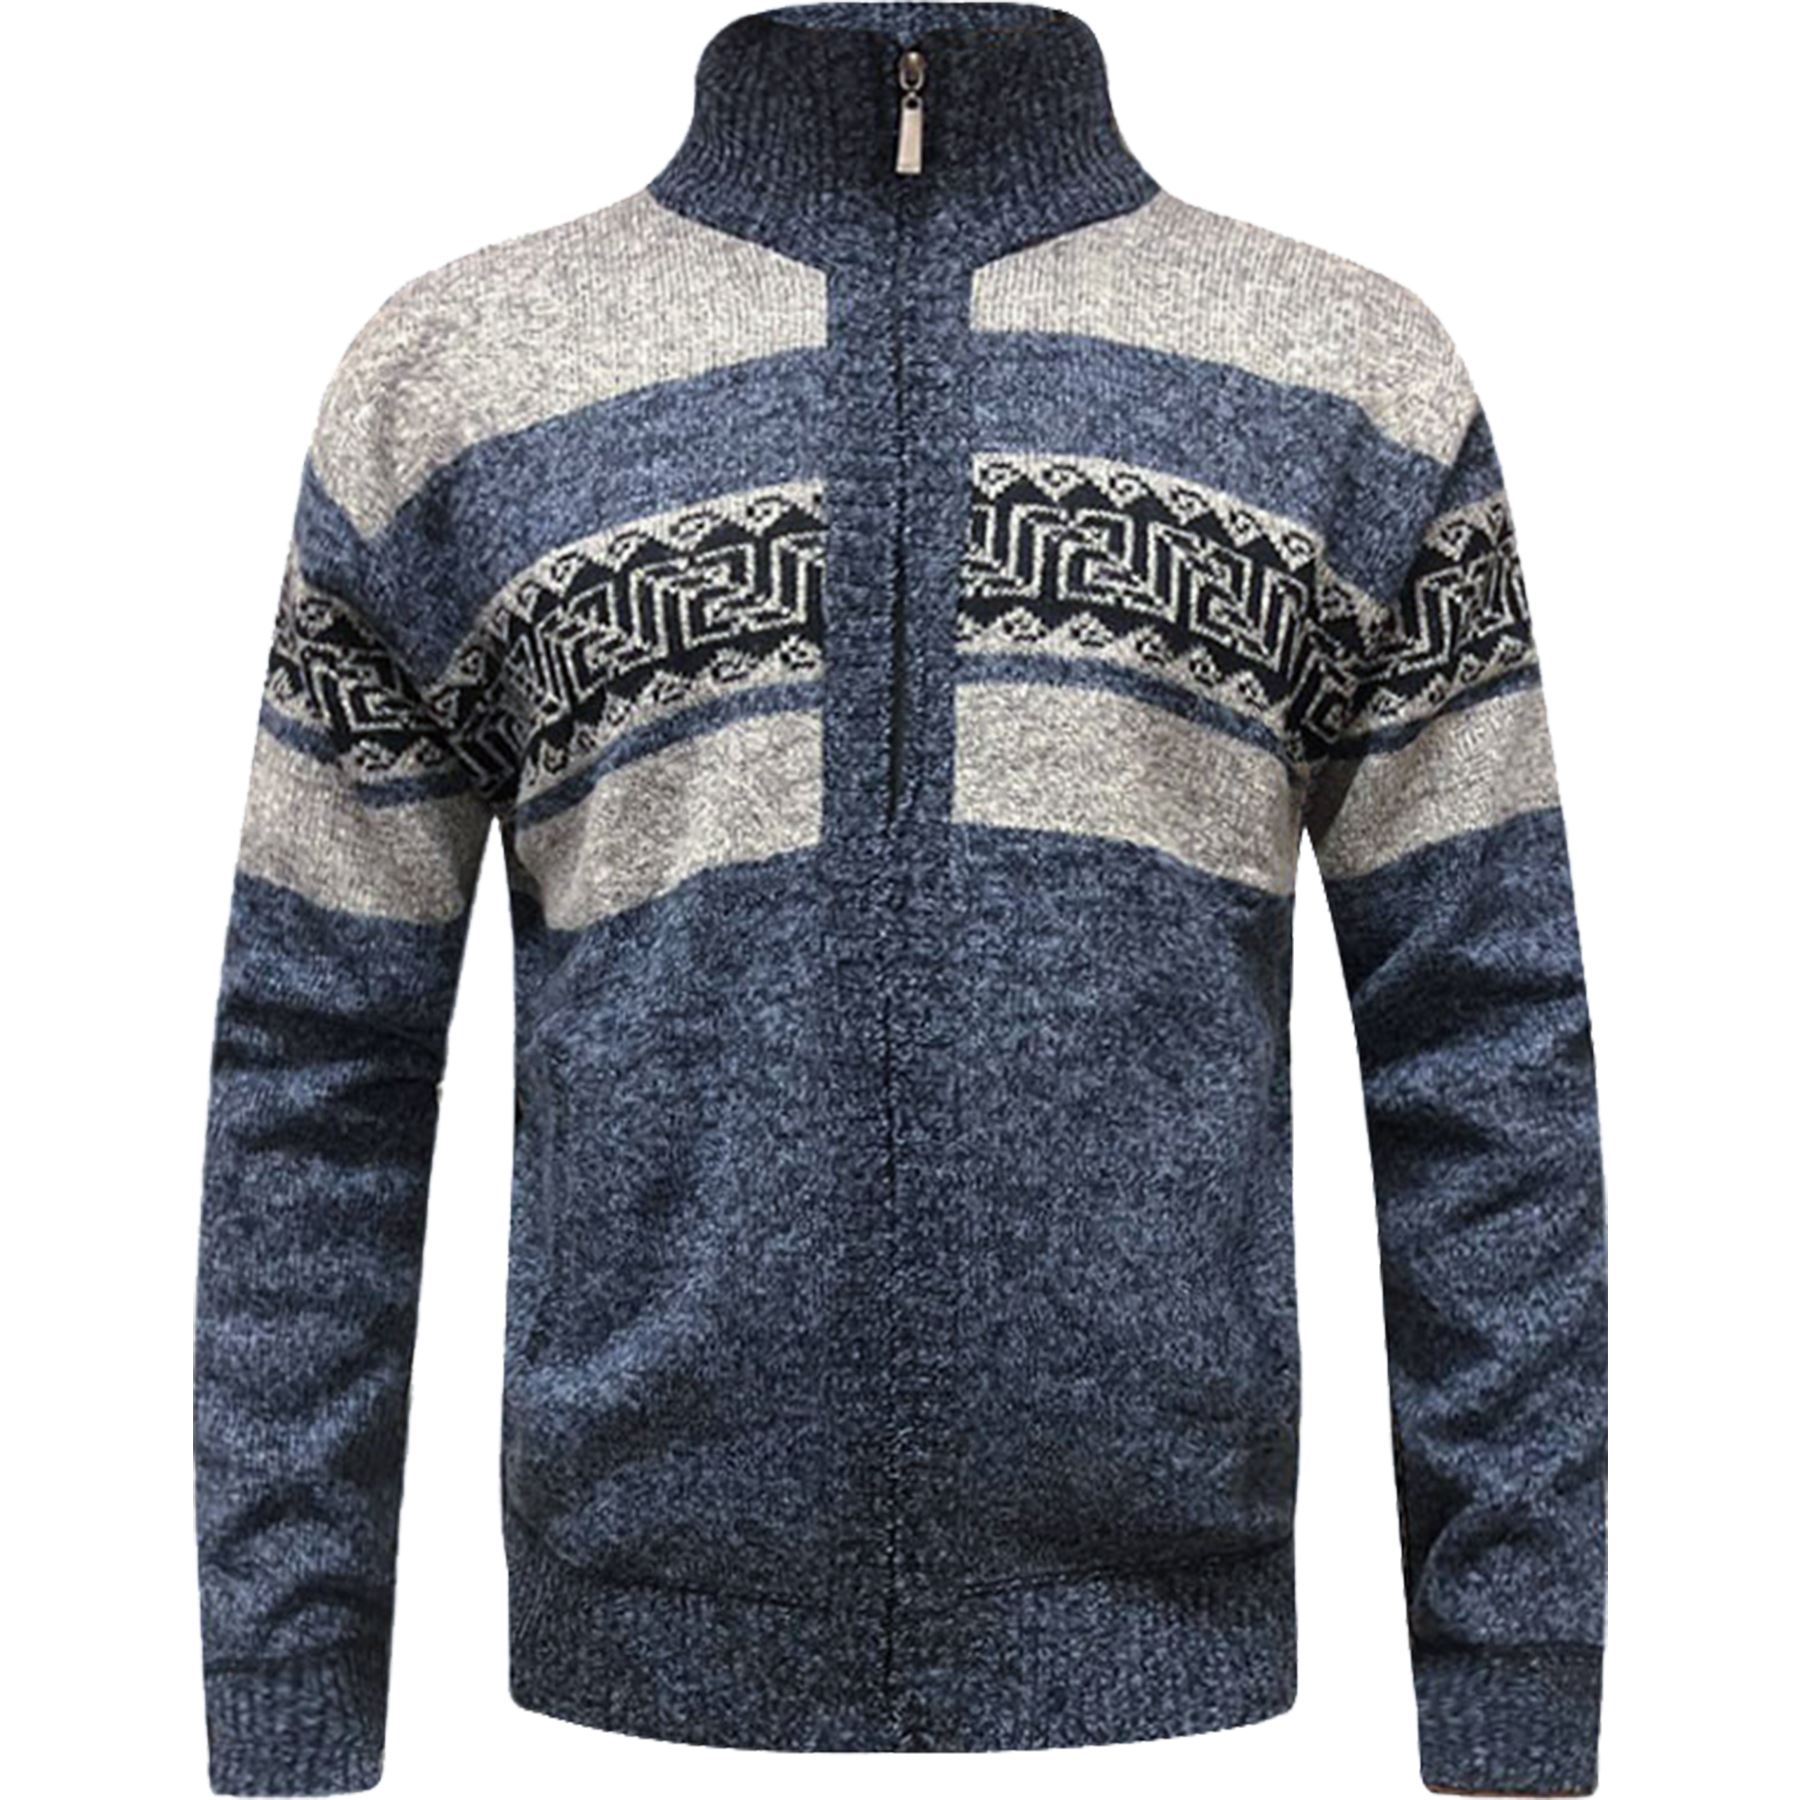 Mens-Zip-Up-Aztec-Fleece-Lined-Knitted-Cardigan-Xmas-Argyle-Wool-Blend-Jumper thumbnail 5